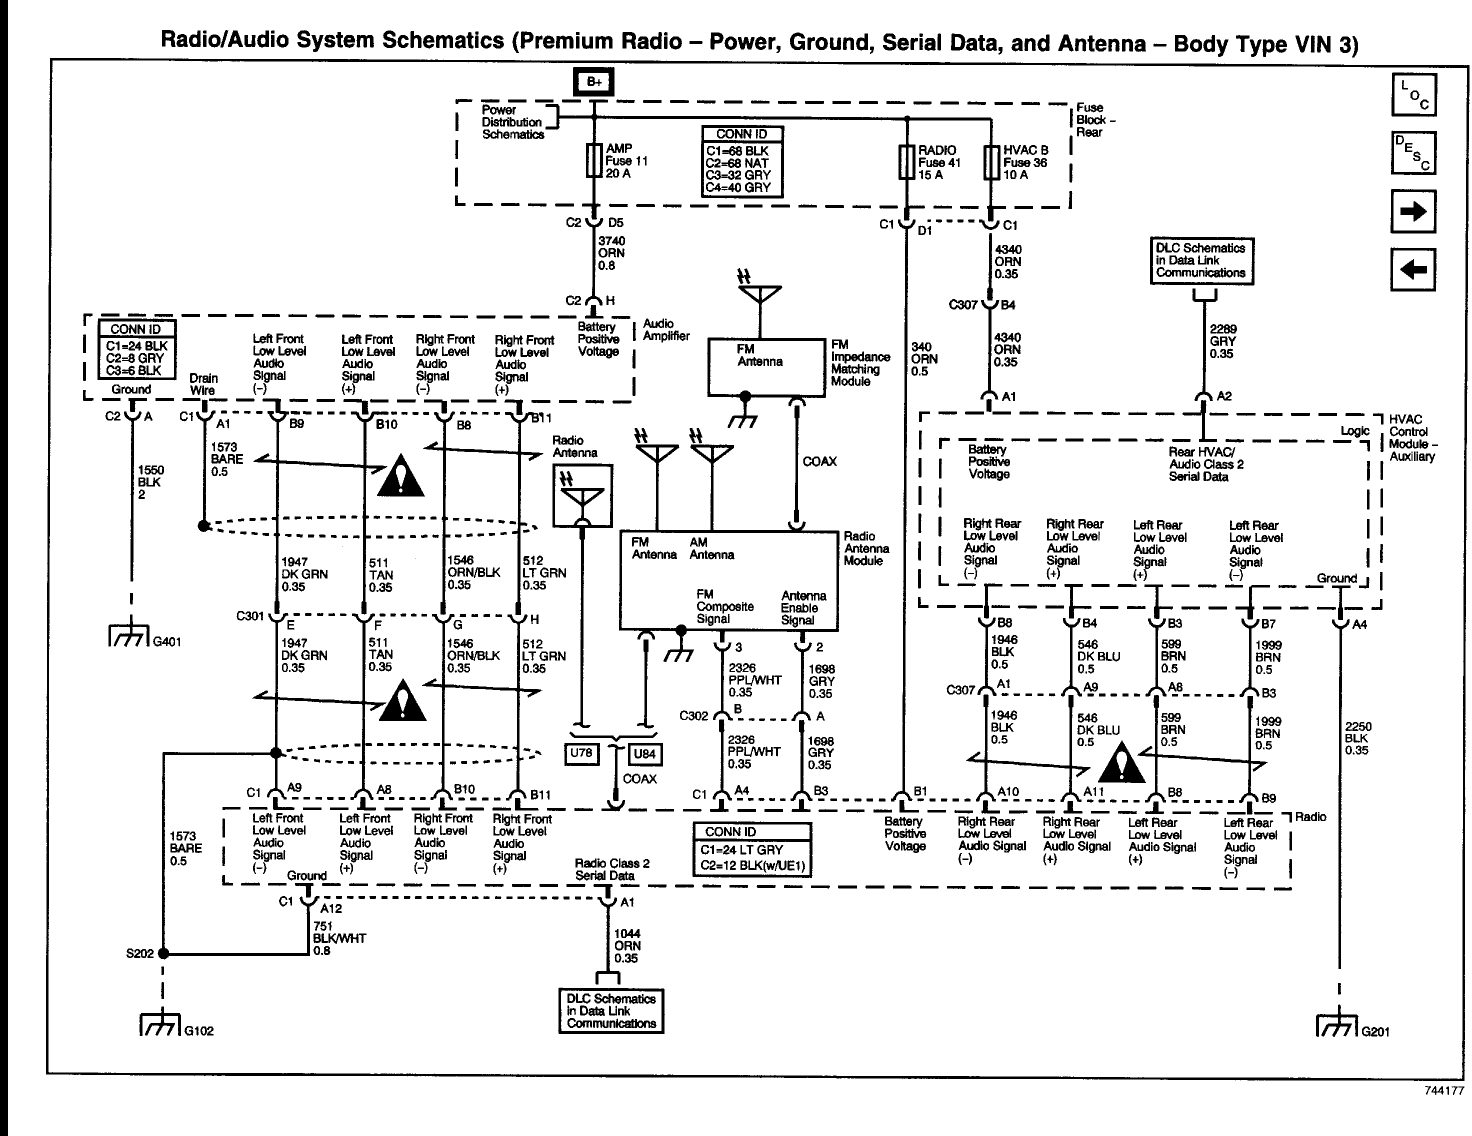 2013 gmc sierra wiring diagram 2004 gmc sierra radio wiring diagram | free wiring diagram